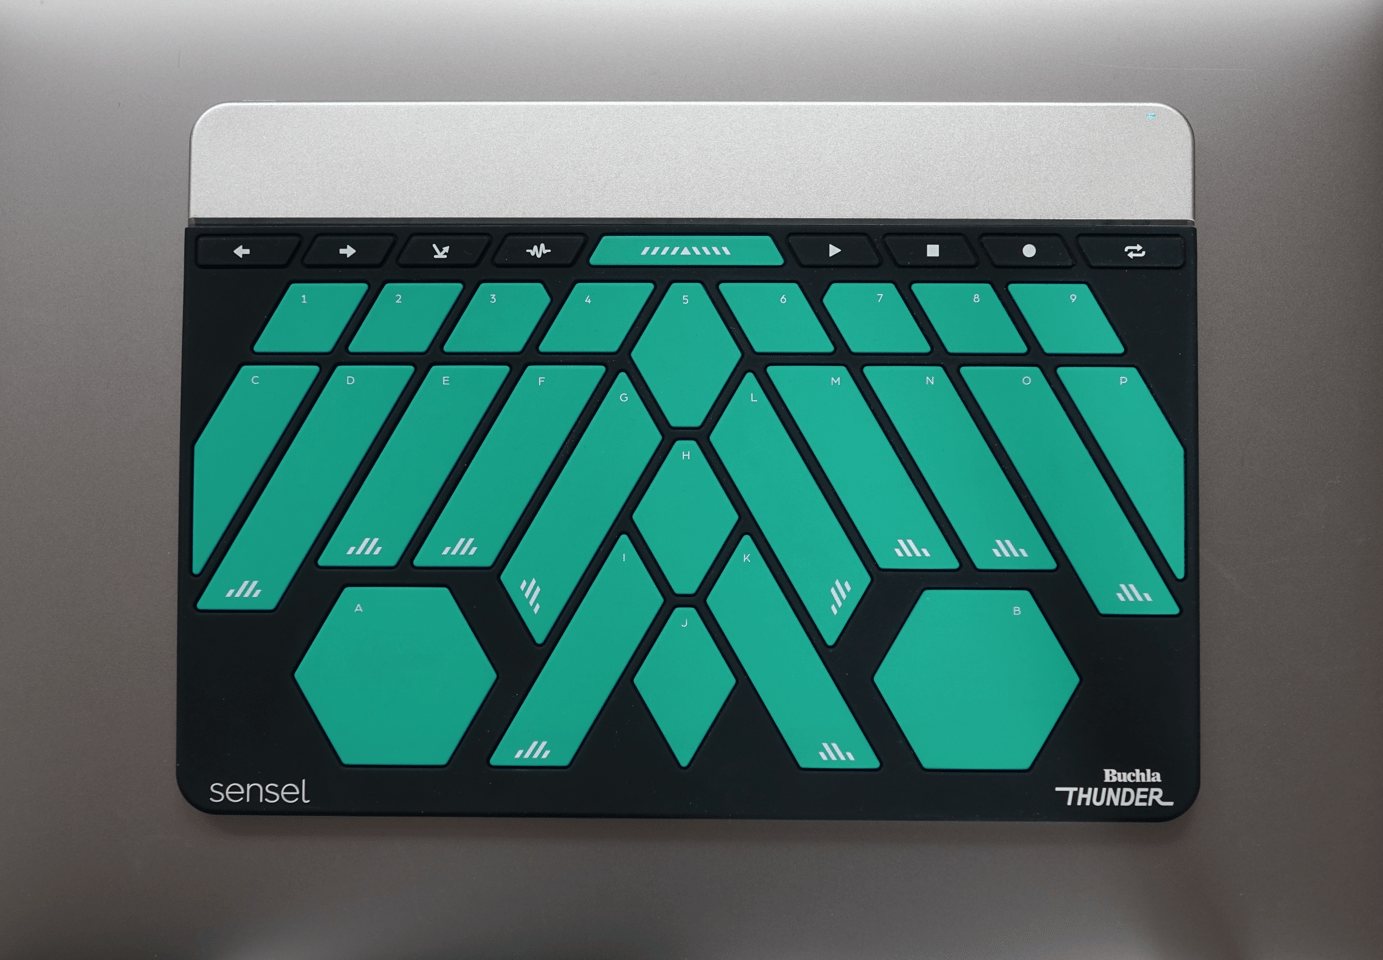 Each of the Buchla Thunder's expressive keys laid out in an eye-catching totem design transmits a different note